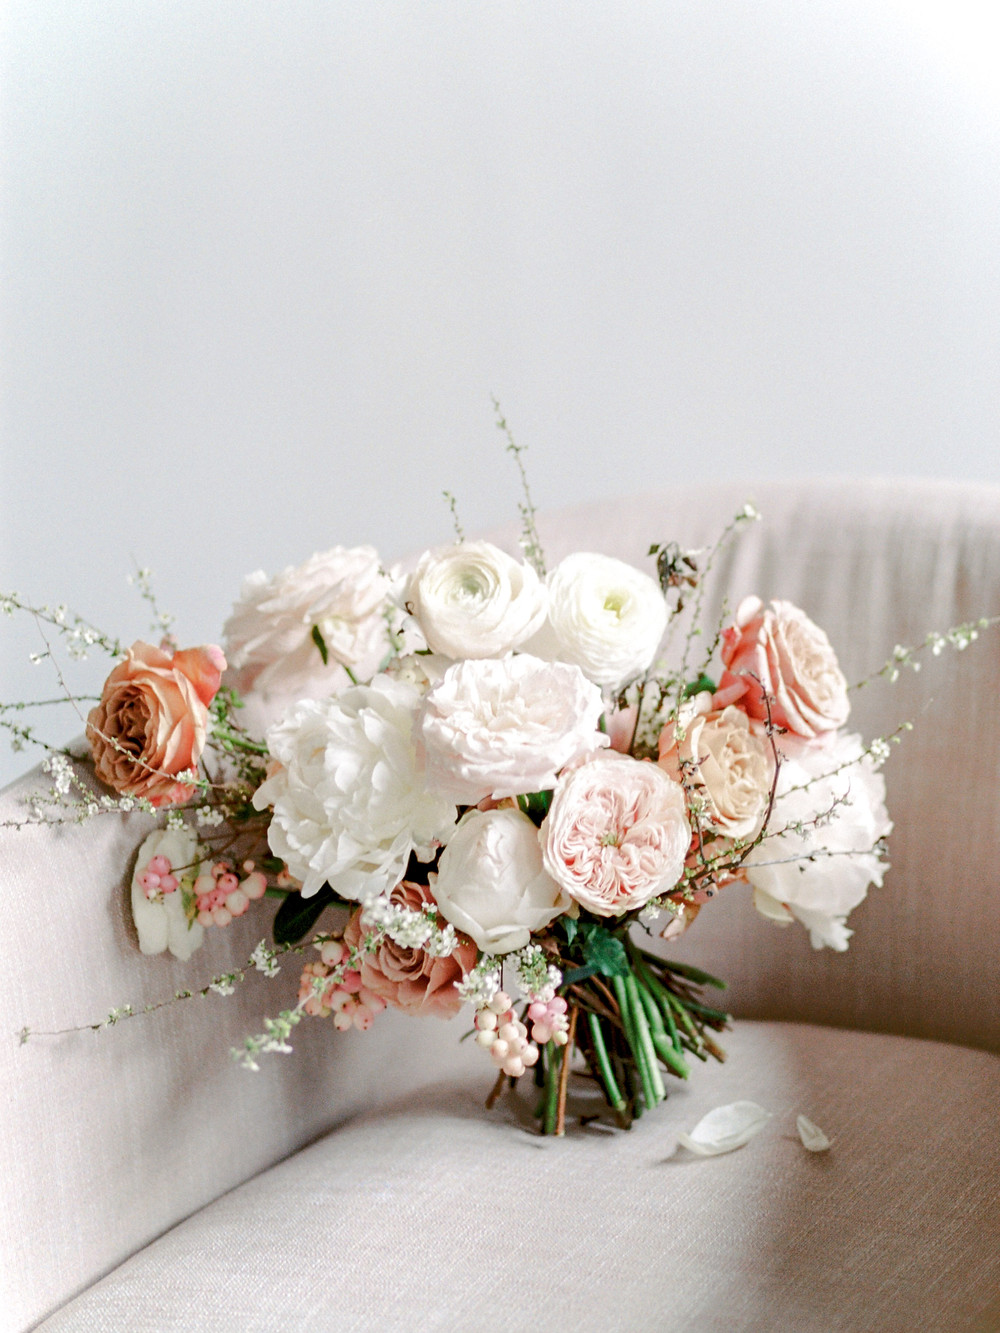 Blush Bouquet with White Peonies and Ranunculus